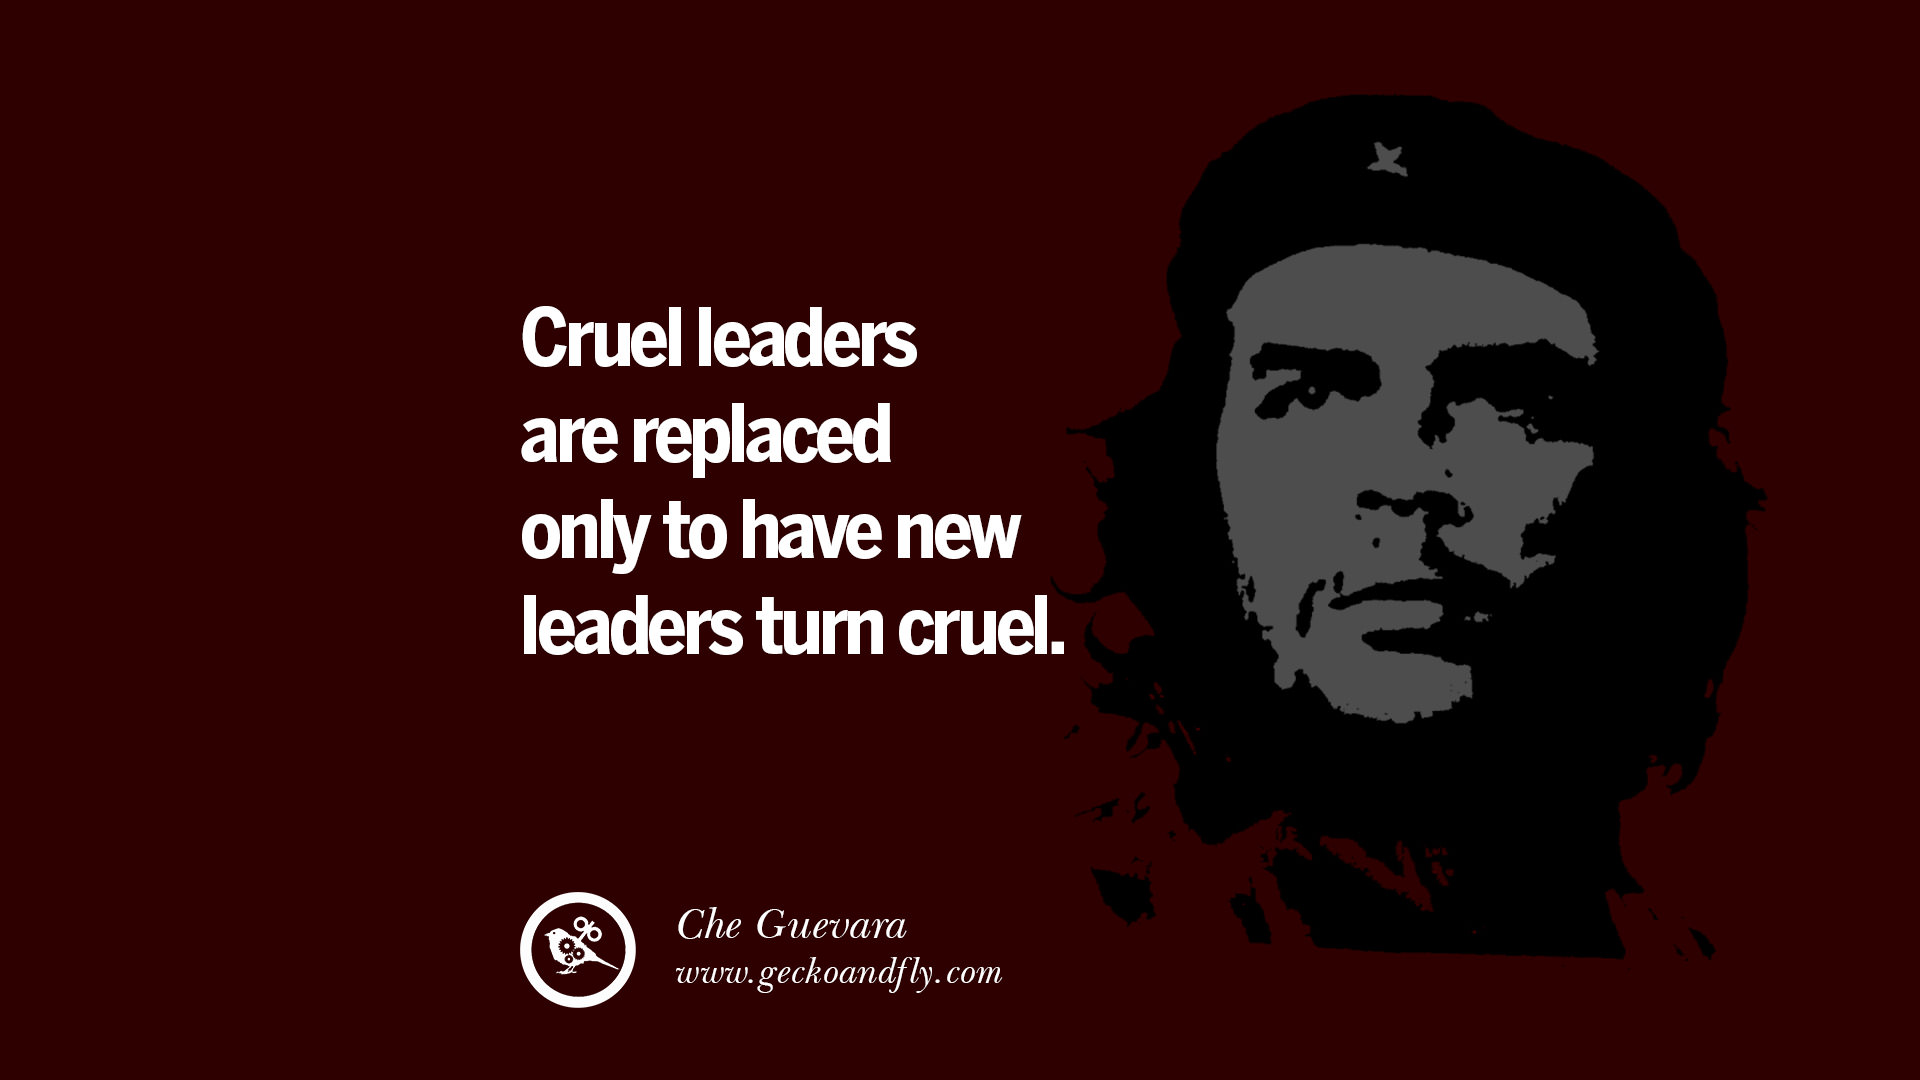 Che Guevara Quotes Cruel leaders are replaced only to have new leaders turn cruel. – Che Guevara